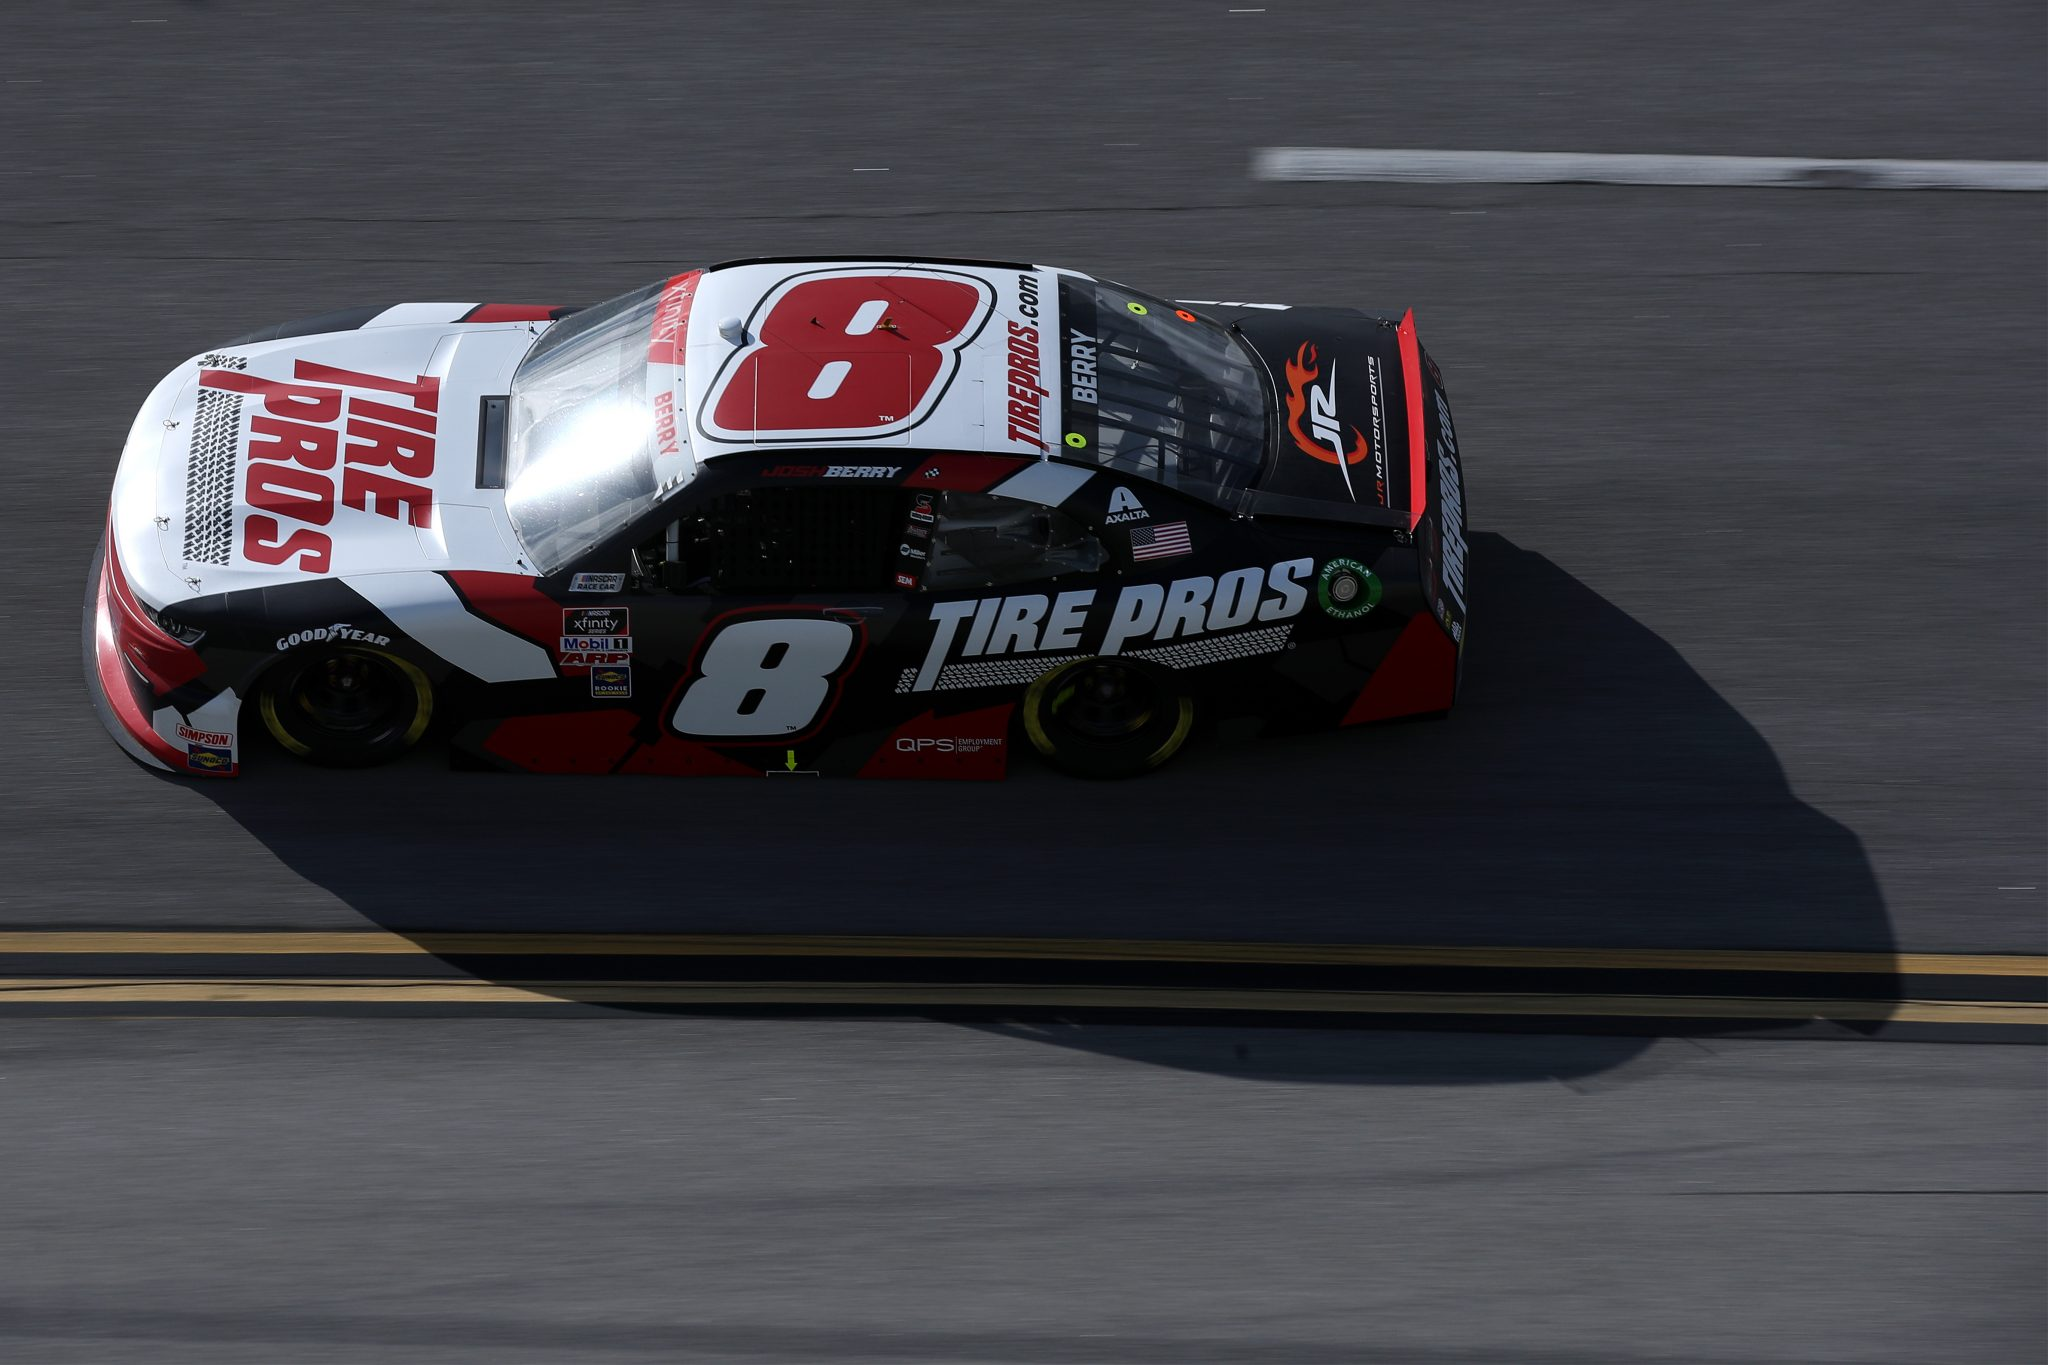 TALLADEGA, ALABAMA - APRIL 24: Josh Berry, driver of the #8 Tire Pros Chevrolet, drives during the NASCAR Xfinity Series Ag-Pro 300 at Talladega Superspeedway on April 24, 2021 in Talladega, Alabama. (Photo by Sean Gardner/Getty Images) | Getty Images